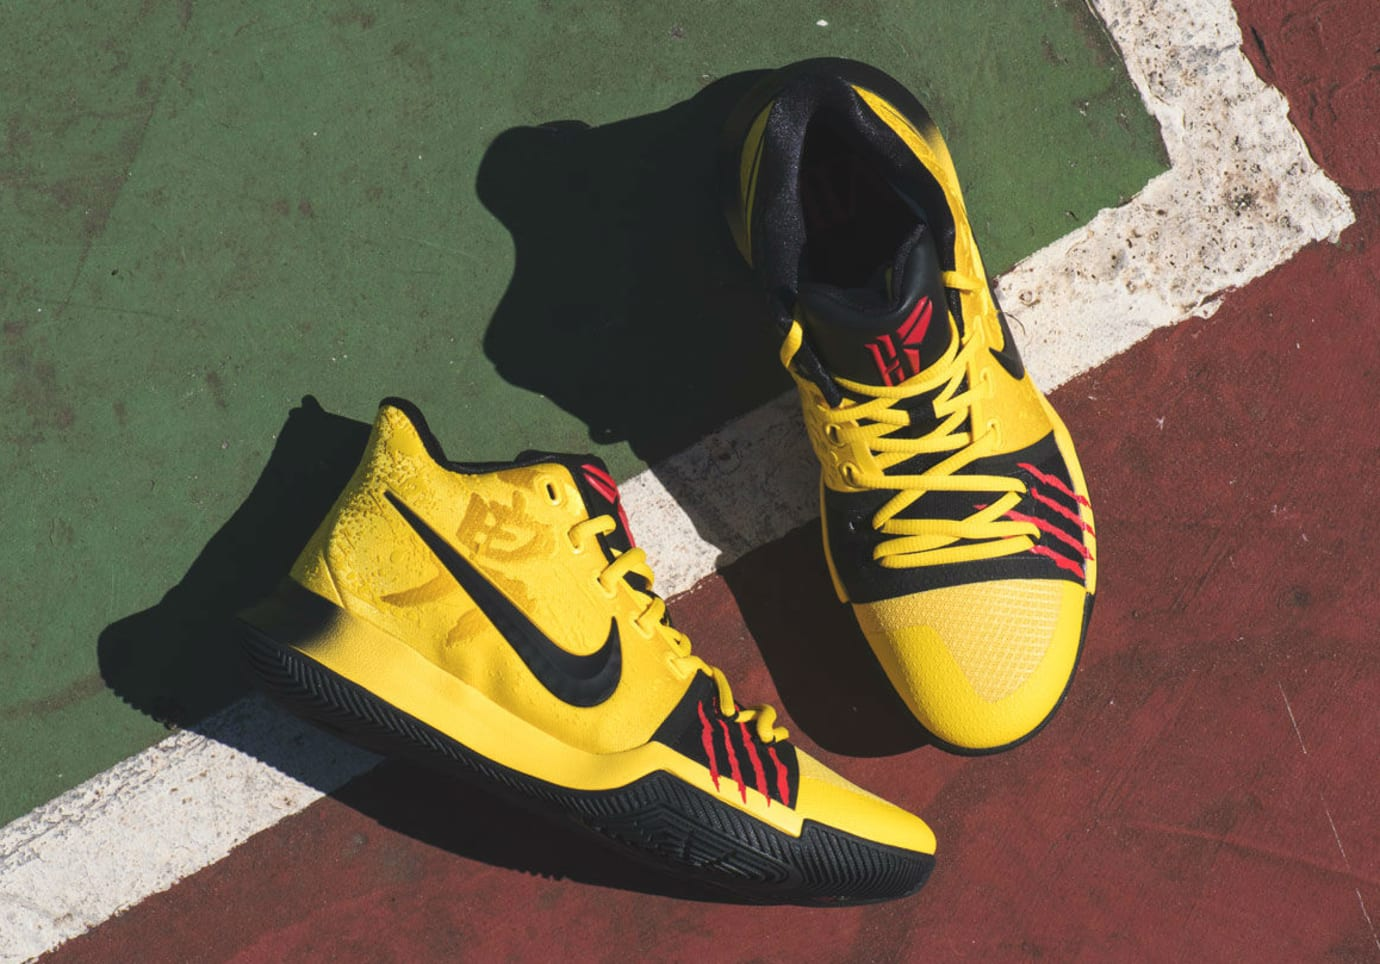 the latest 8cd26 be622 Nike Kyrie 3 Mamba Mentality Bruce Lee Restock AJ1672-700 ...